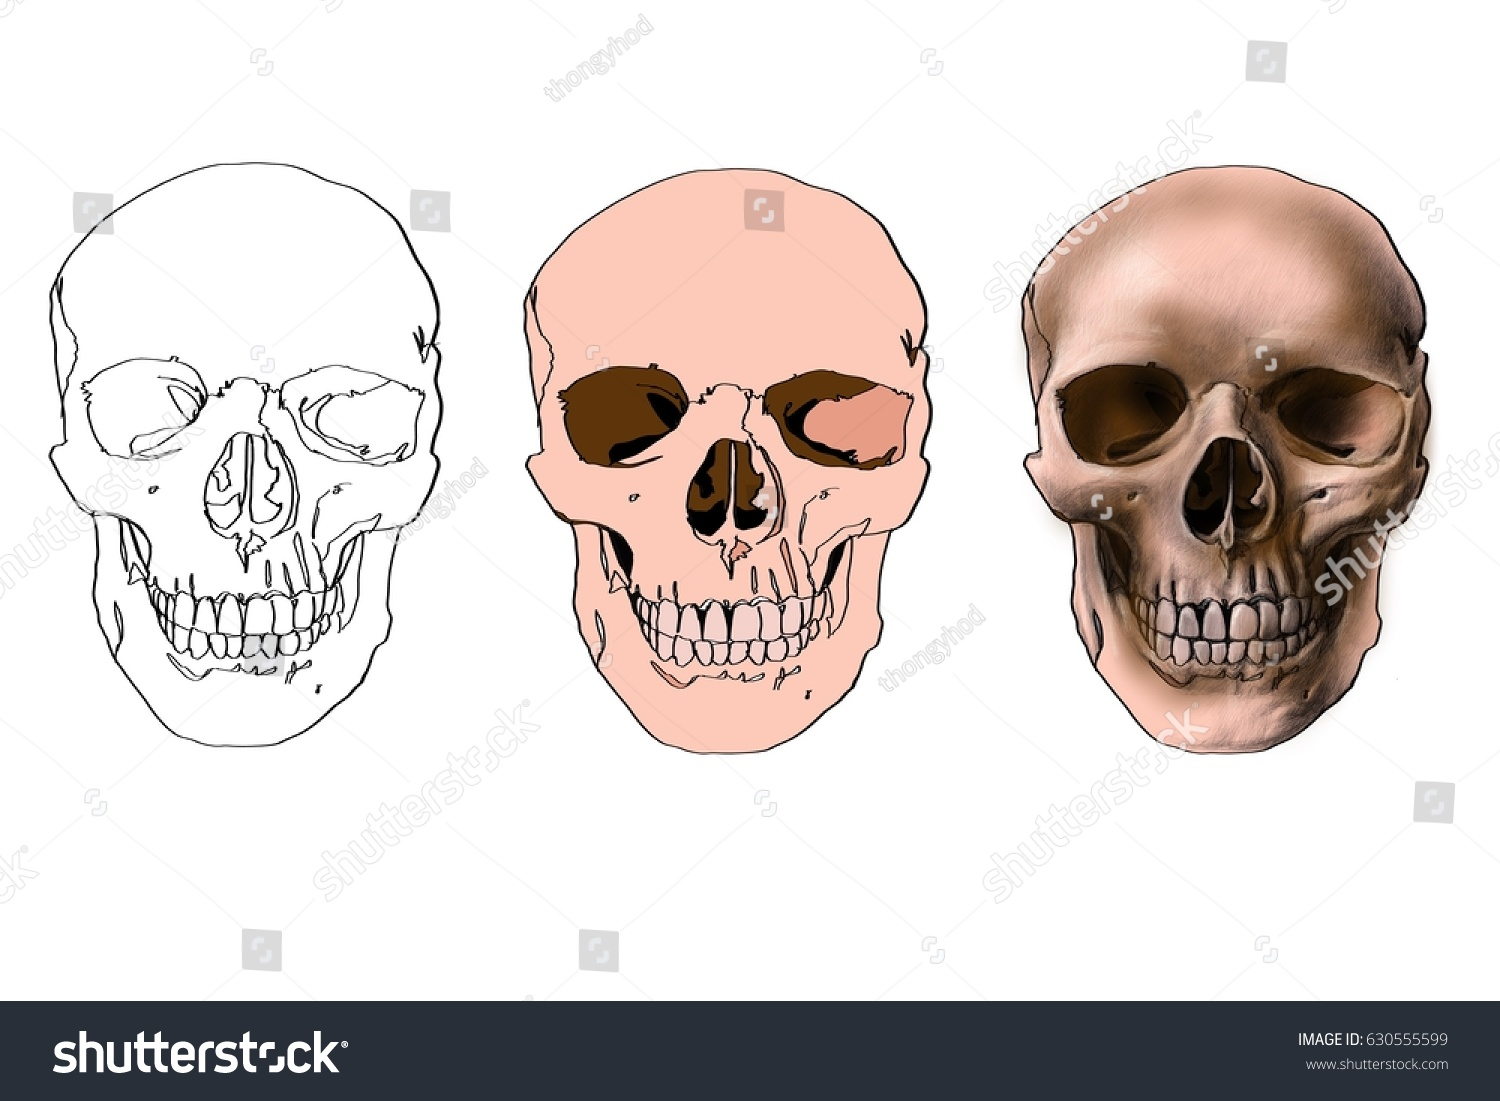 Line Drawing Of Human Face : Skull draw line drawing step stock illustration